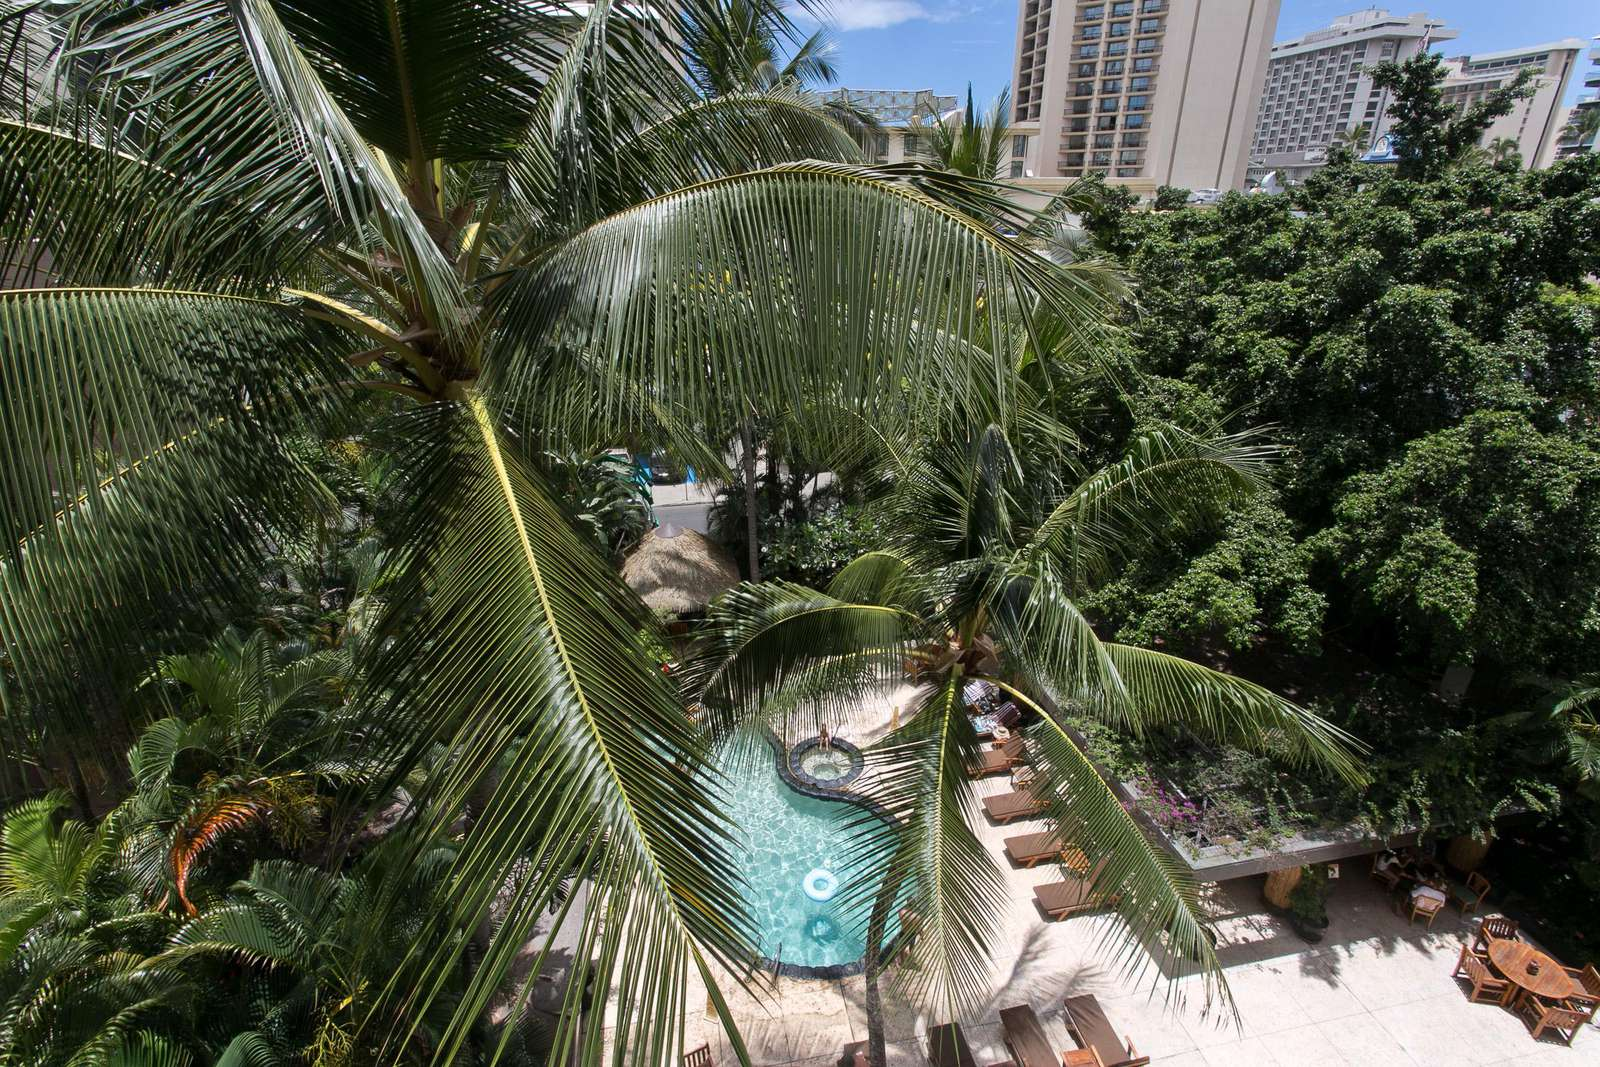 The Bamboo Hotel's lush pool area